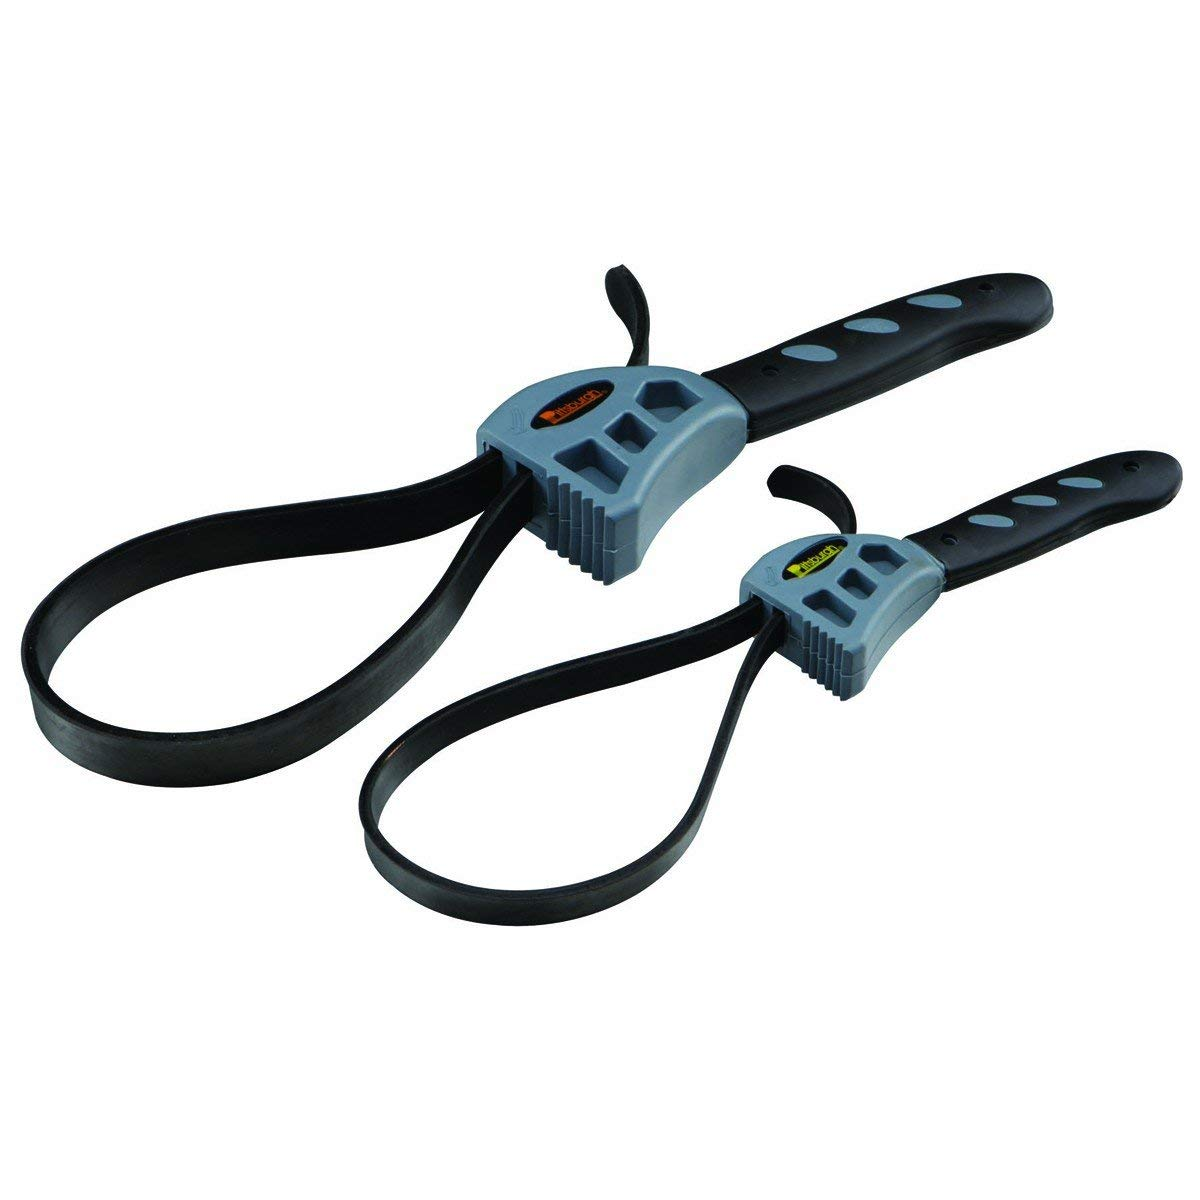 2 Piece Rubber Strap Wrench Set